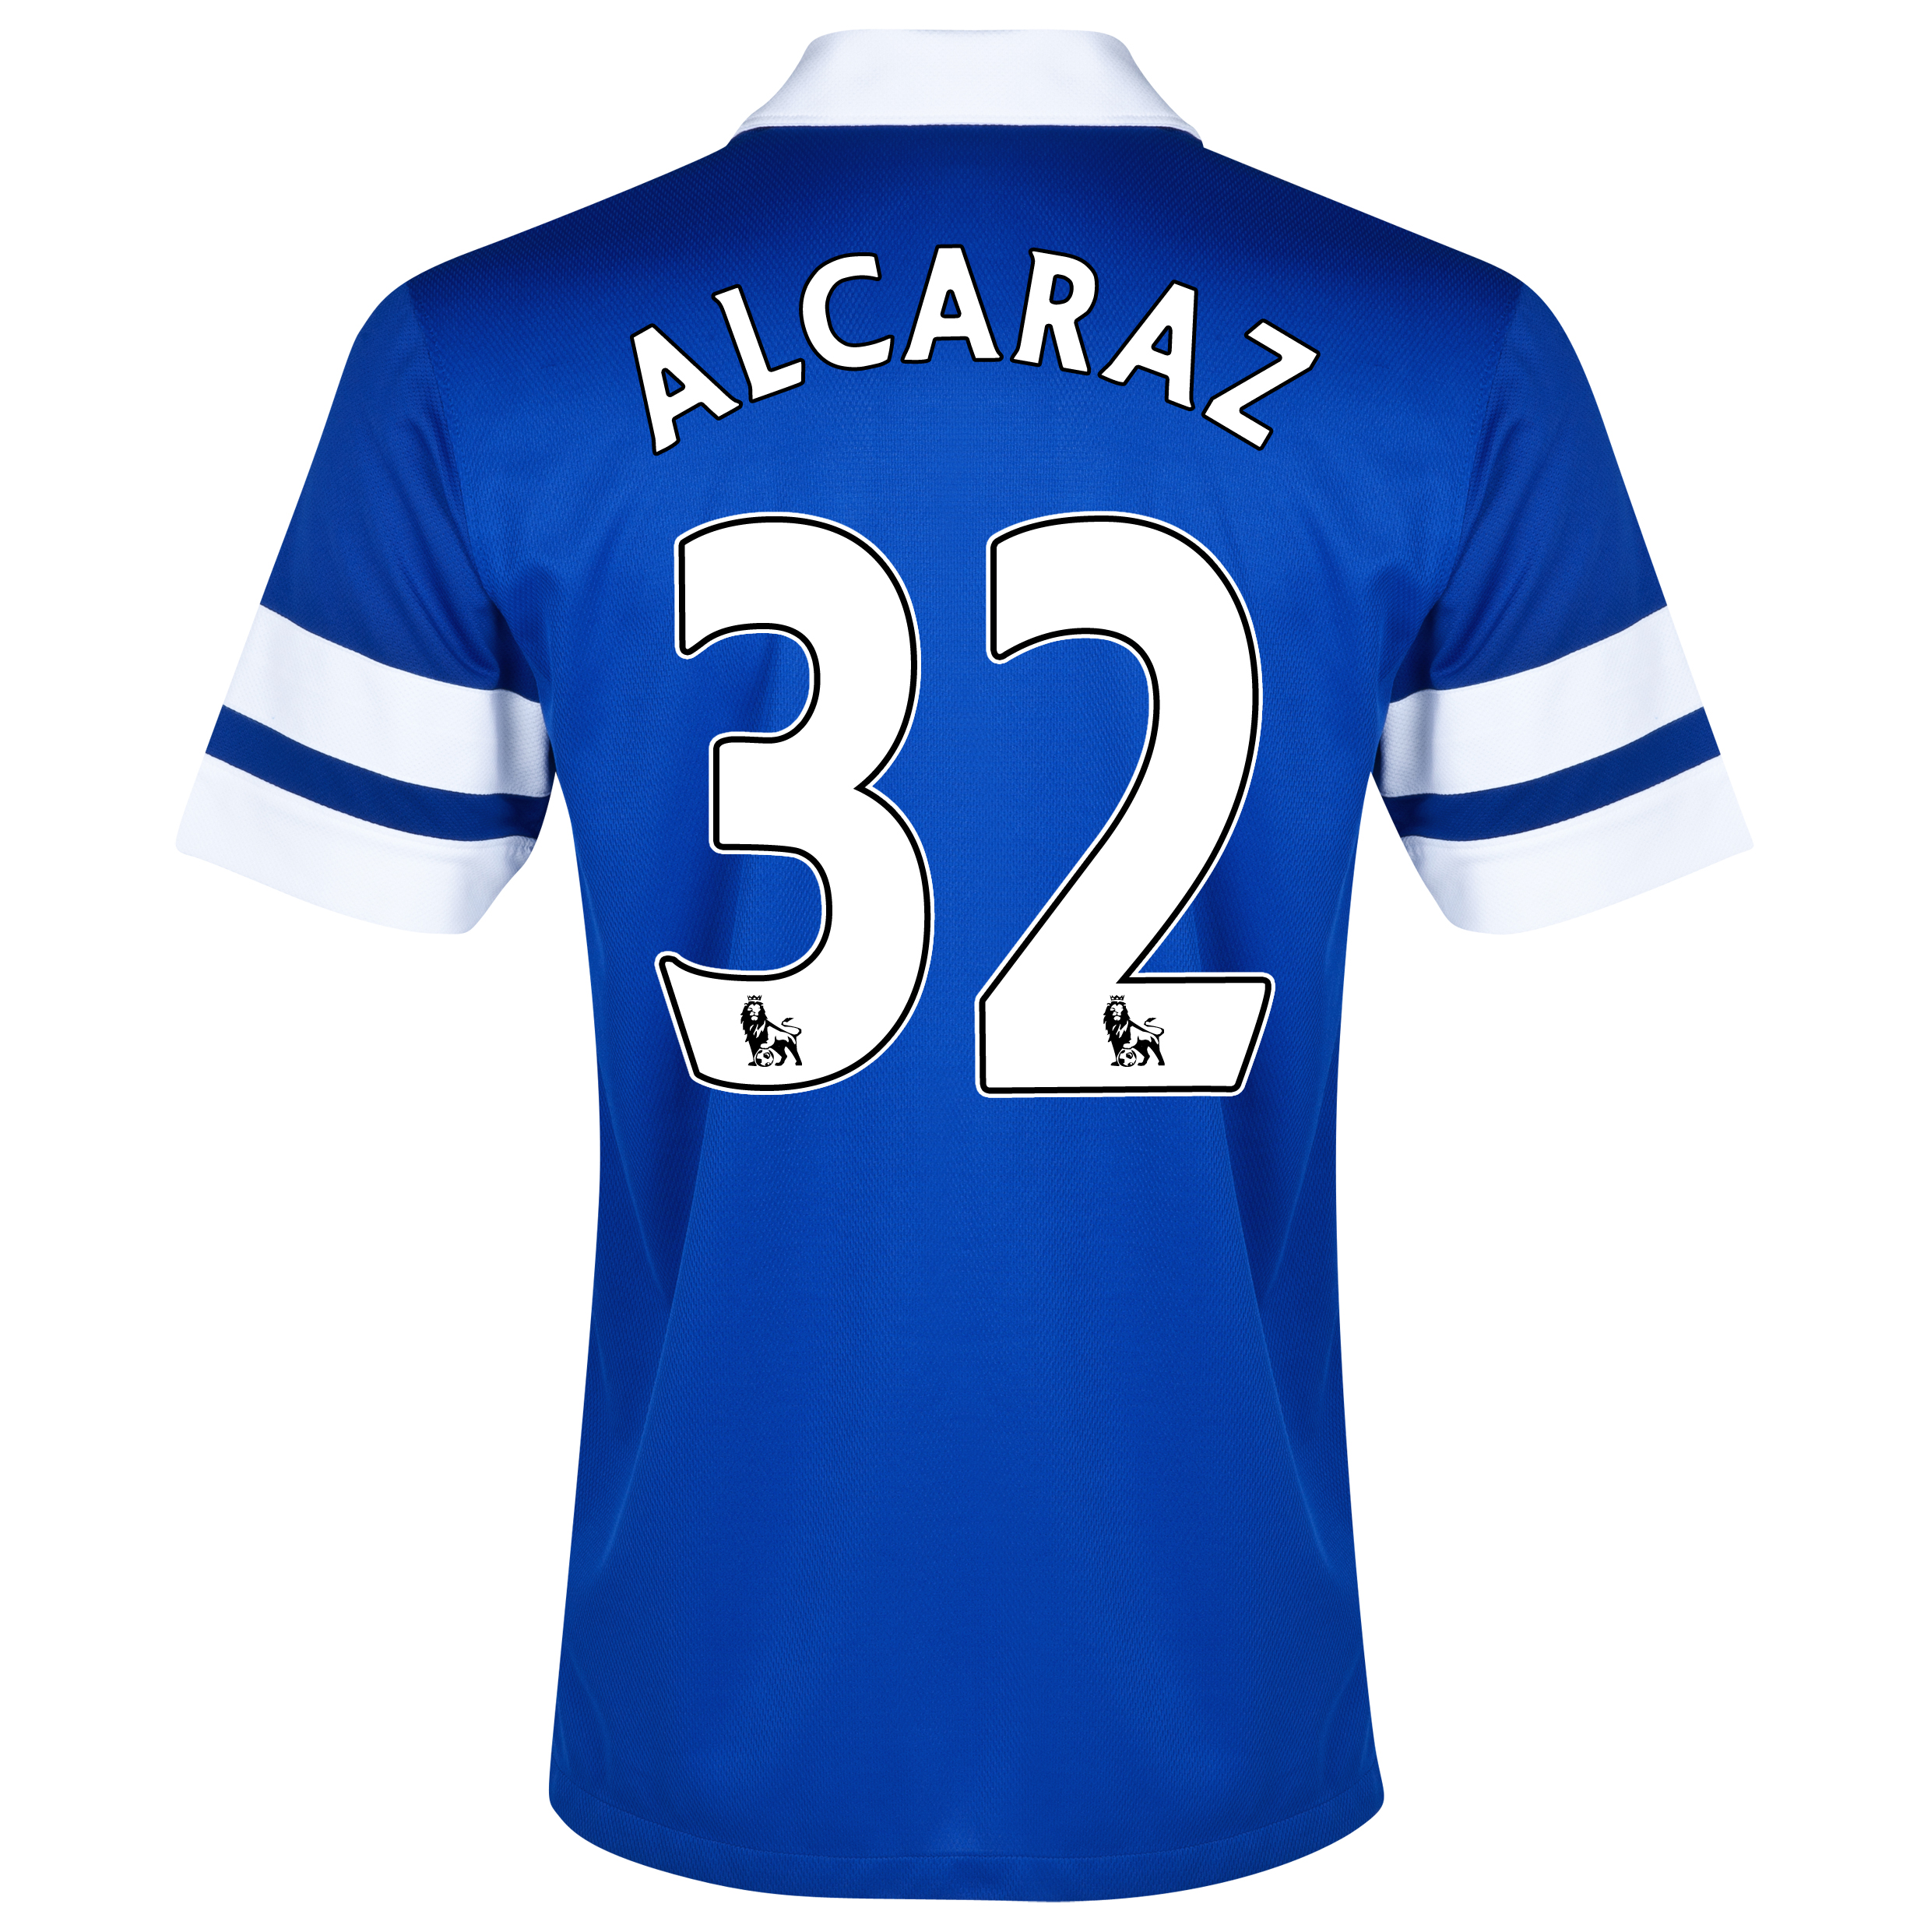 Everton Home Shirt 2013/14 Blue with Alcaraz 32 printing